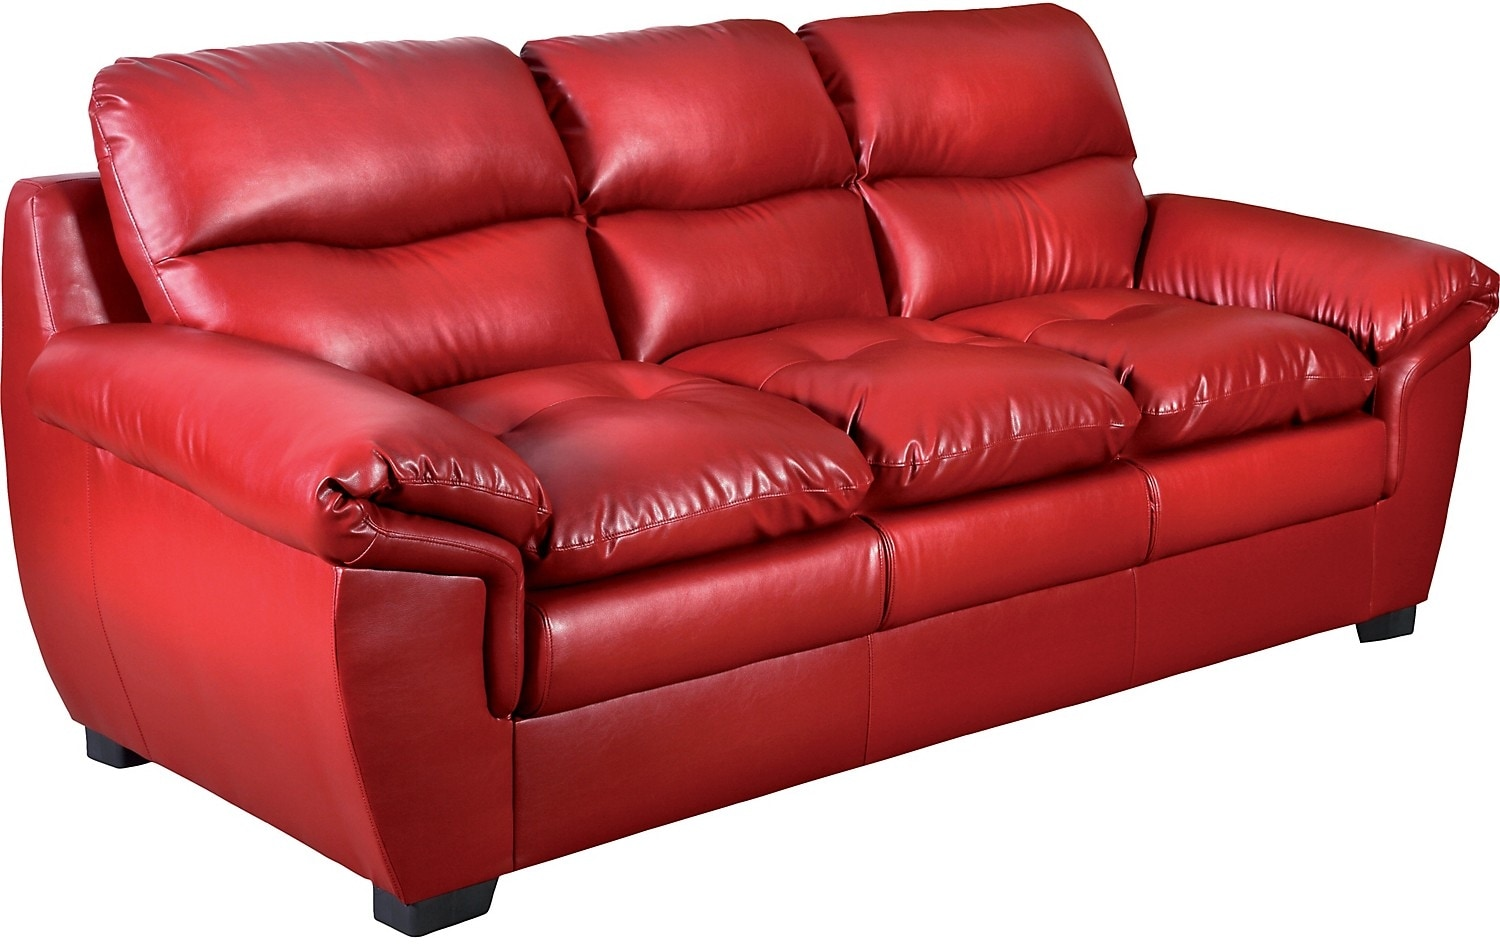 E6 Red Bonded Leather Sofa